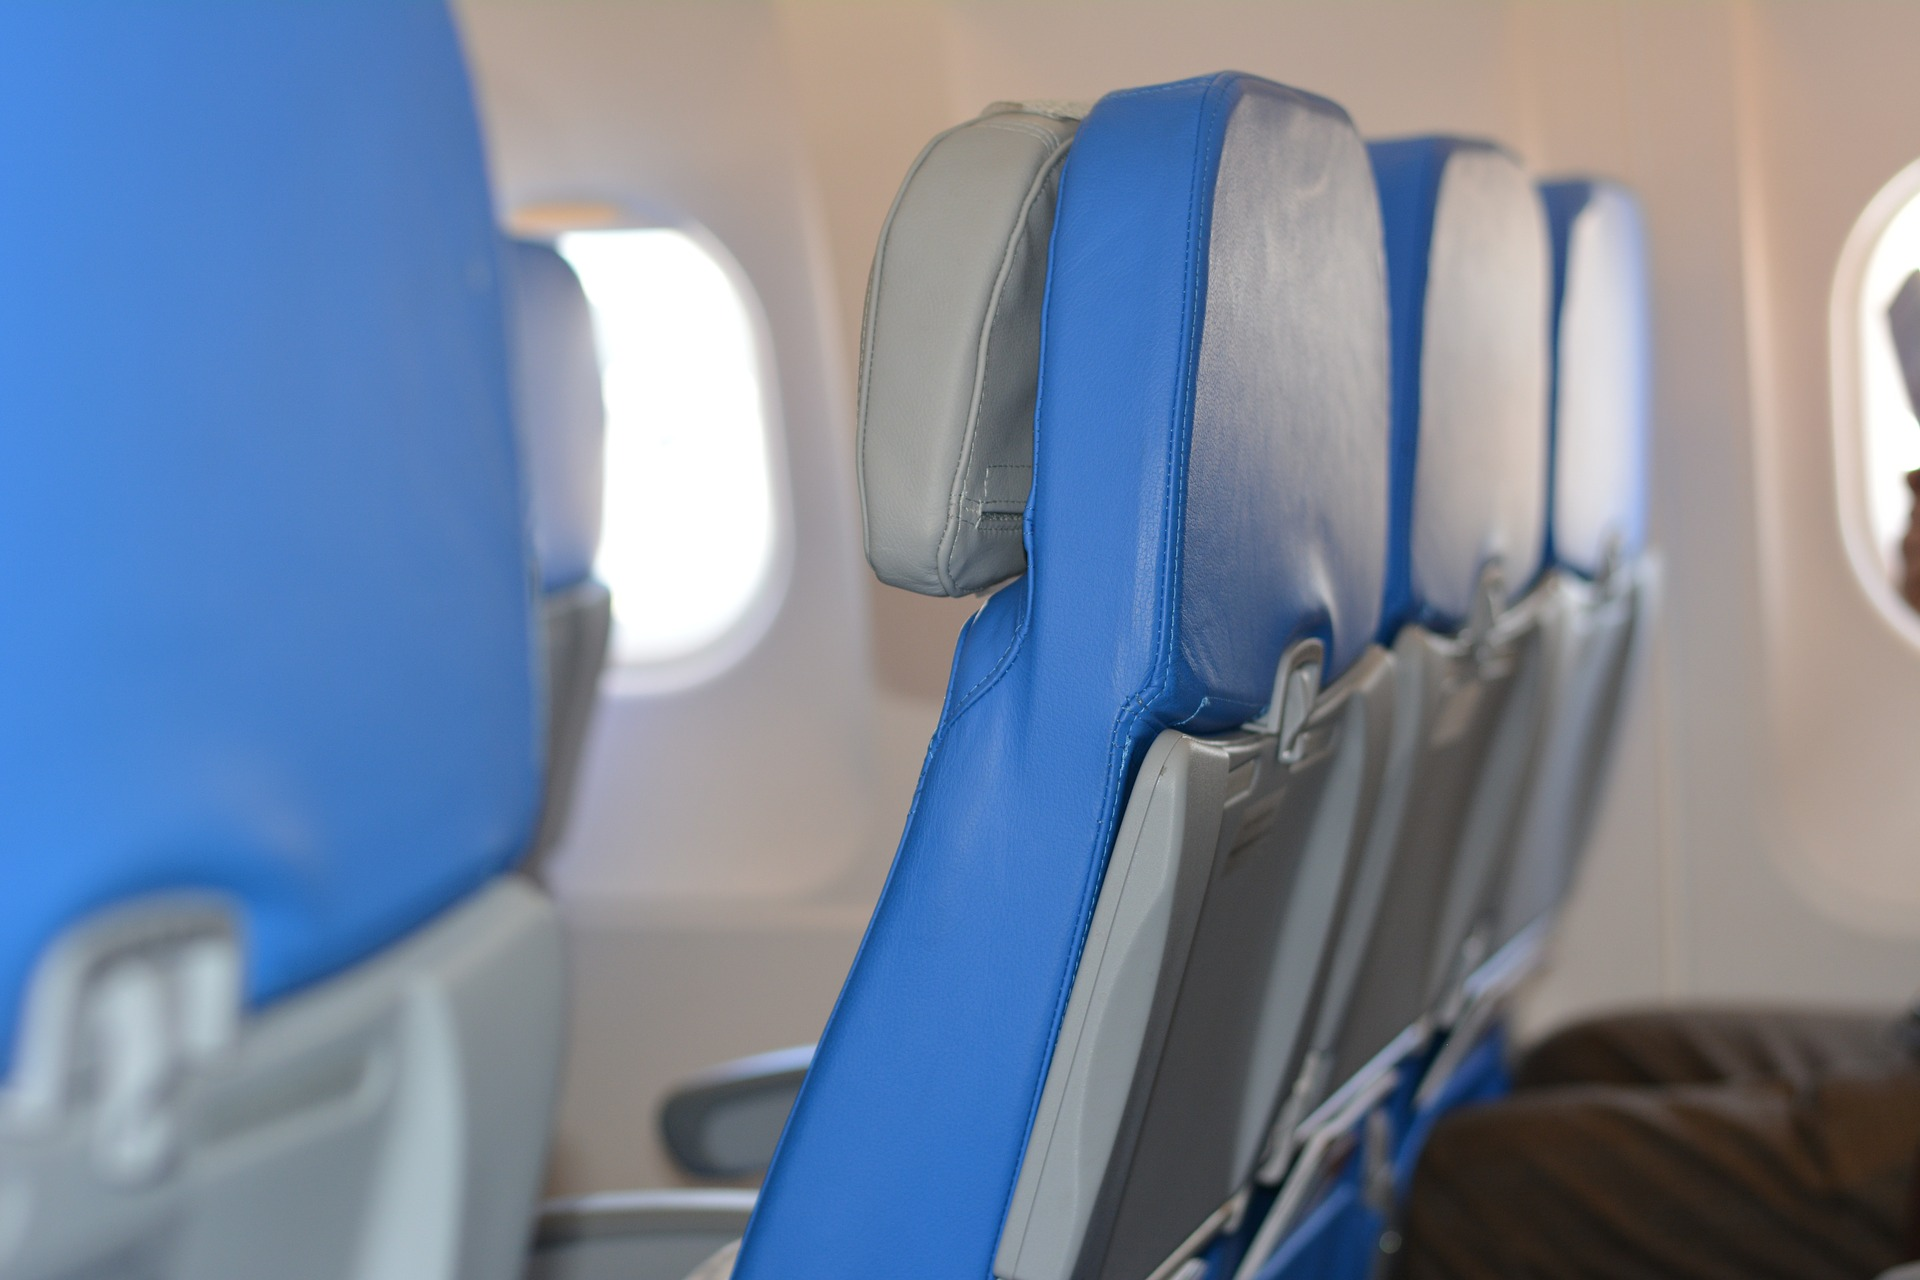 Airplain Economy Seats: What's the difference between different airfare classes?